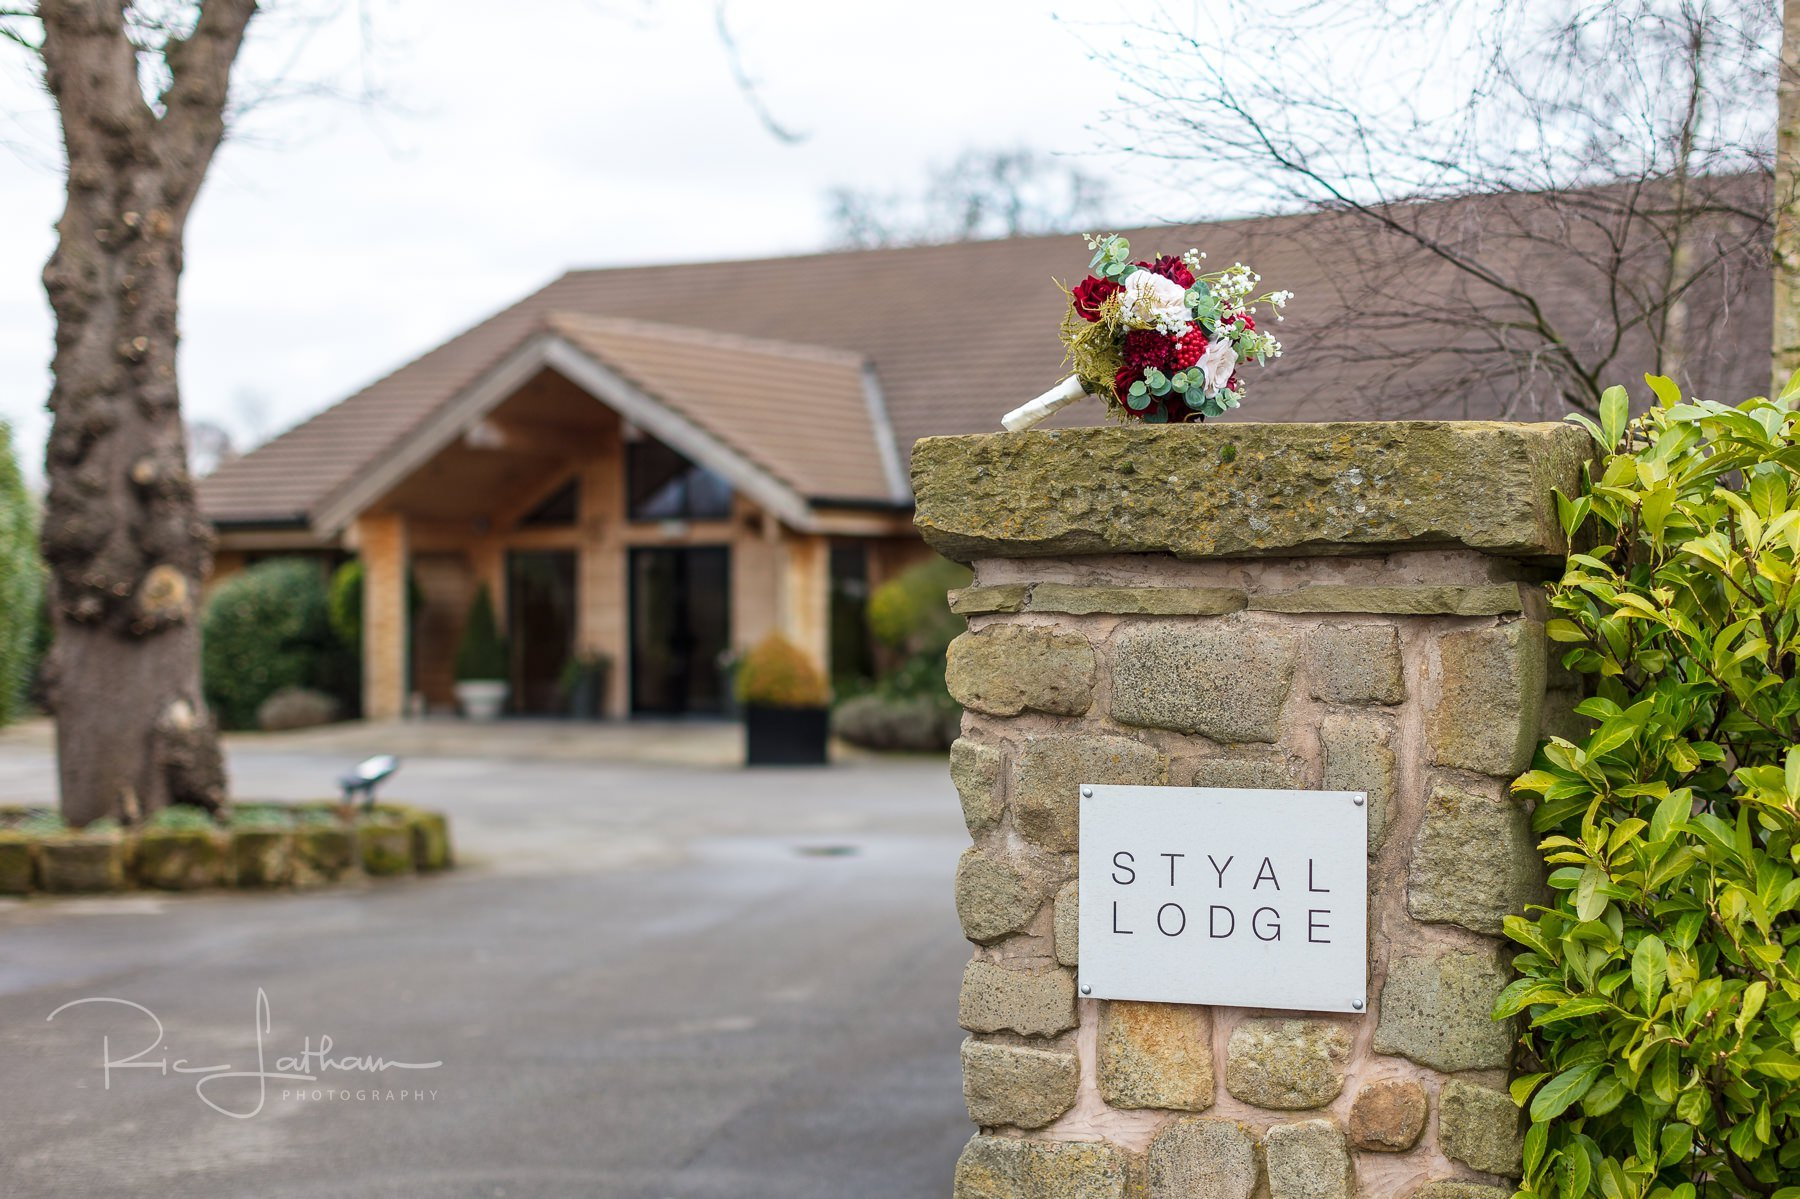 styal-lodge-wedding-venue